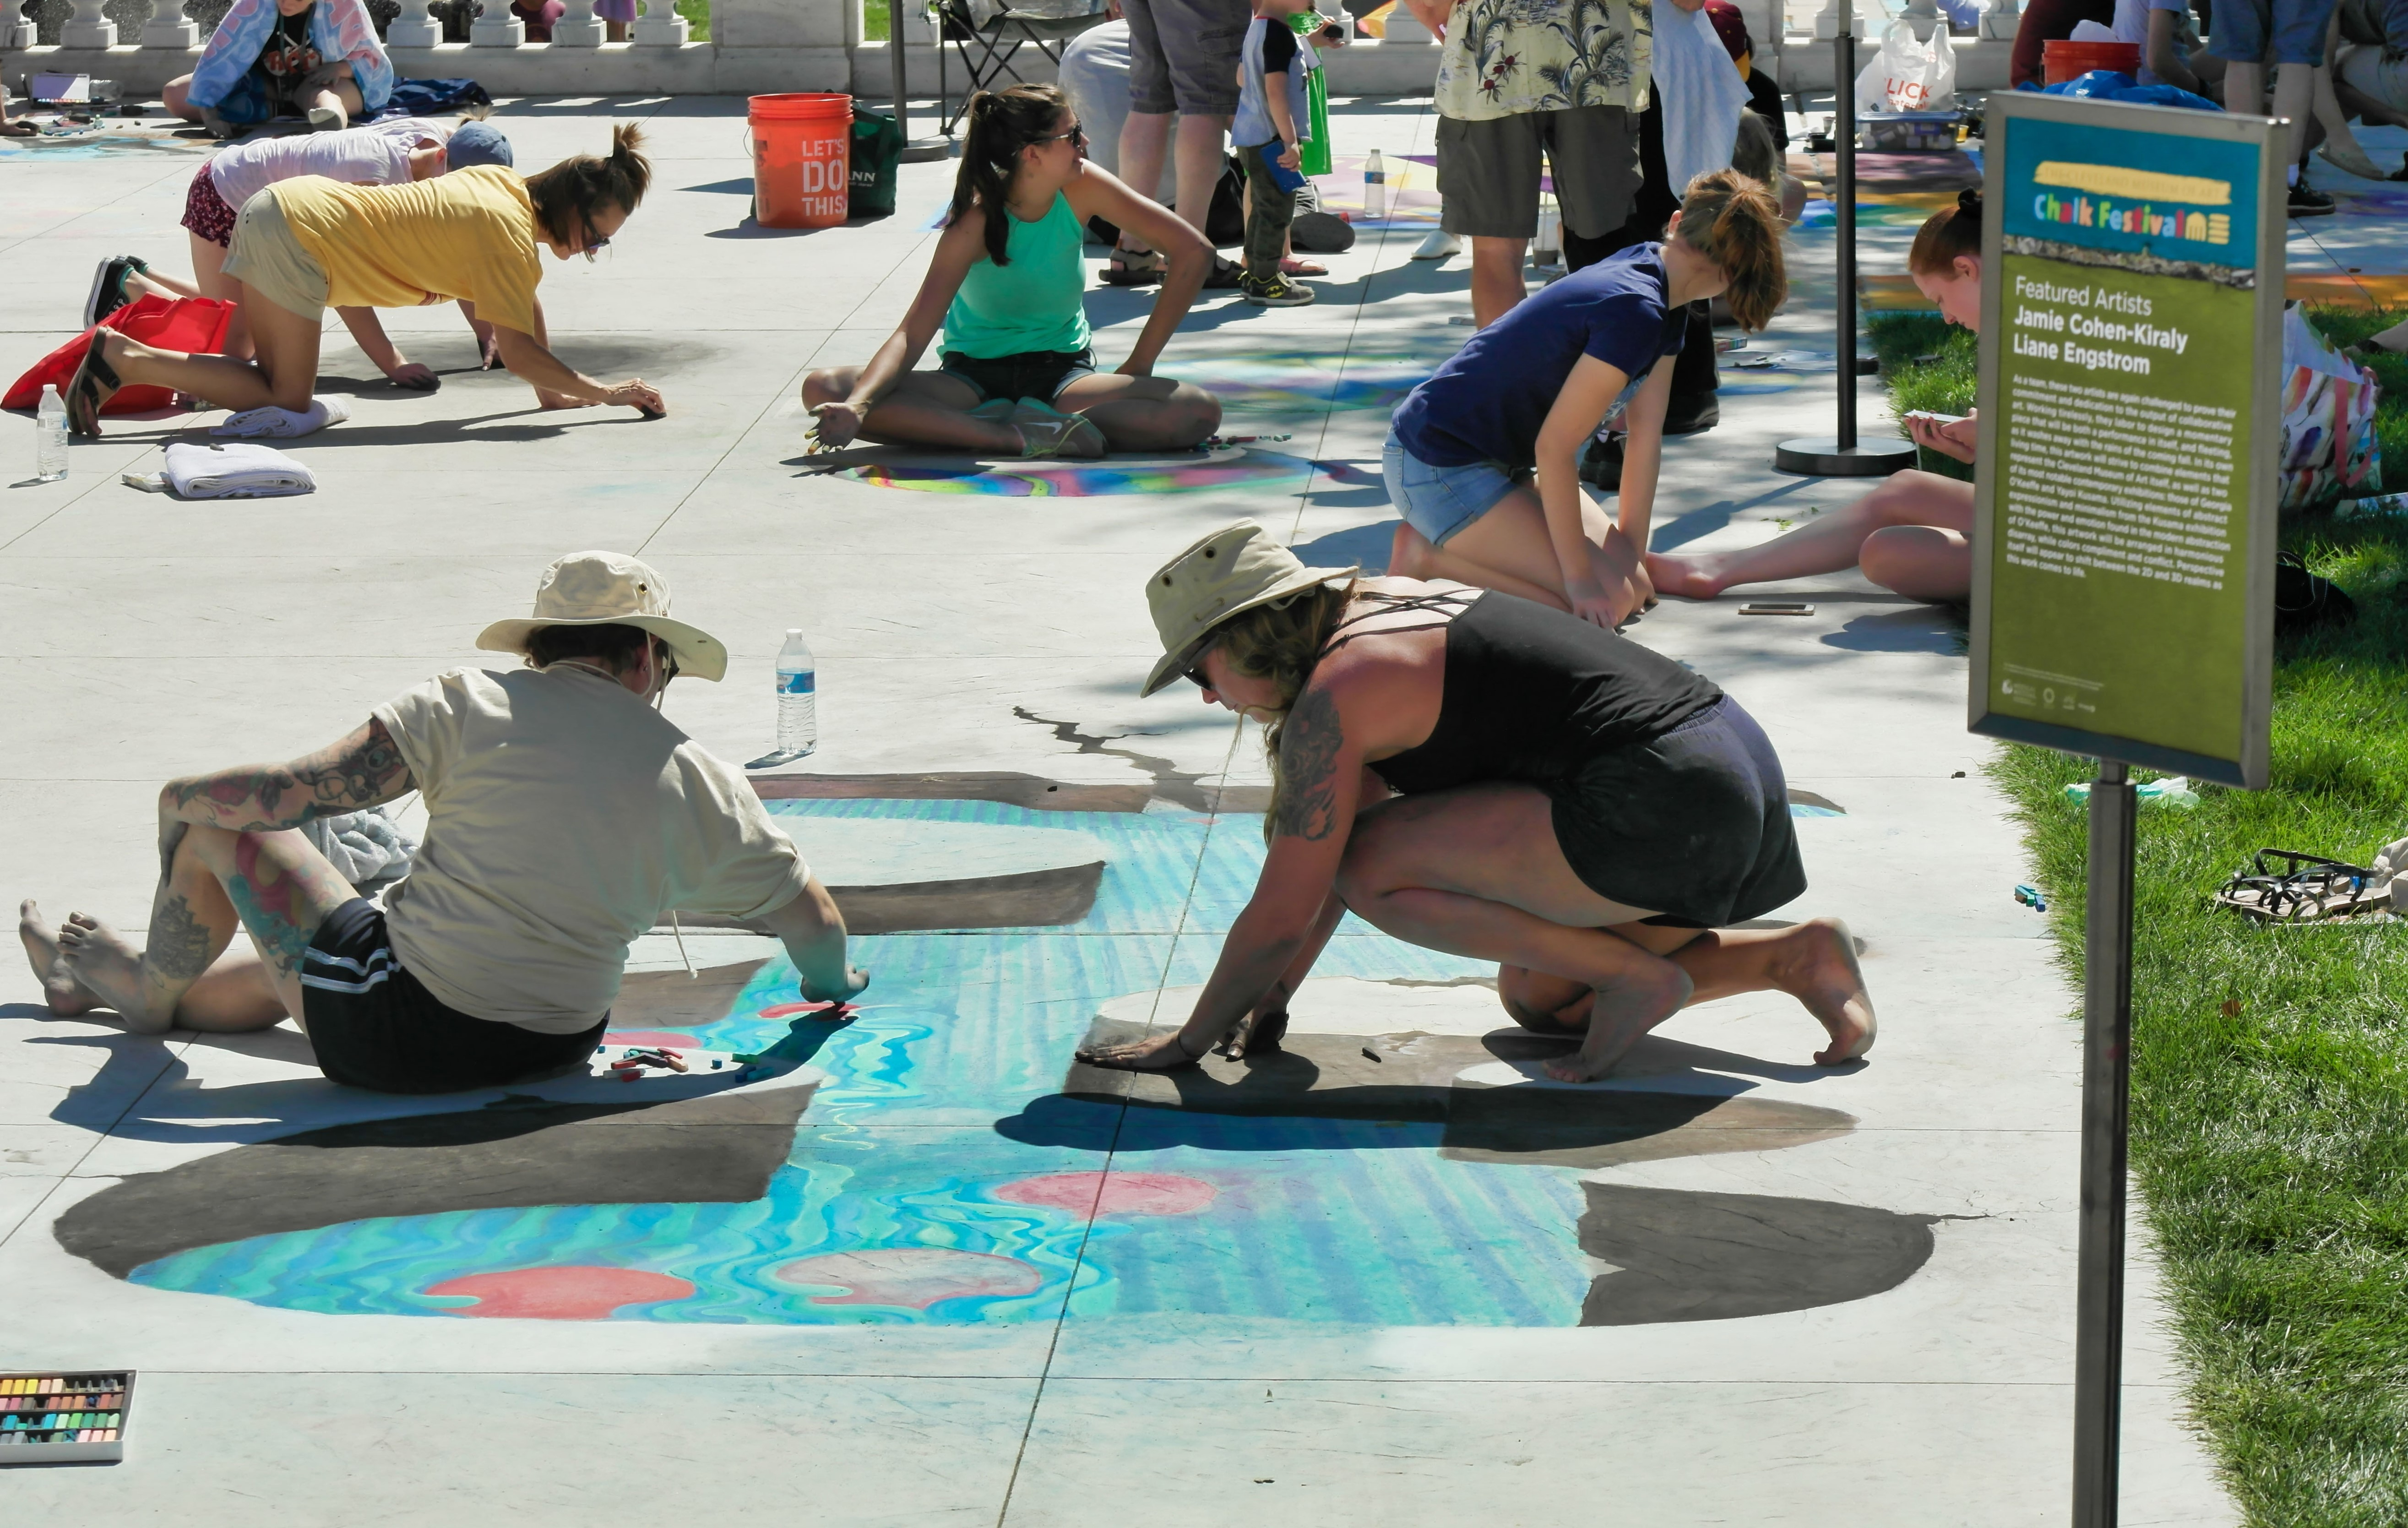 What You Need to Know About This Weekend's Chalk Festival at the Cleveland Museum of Art